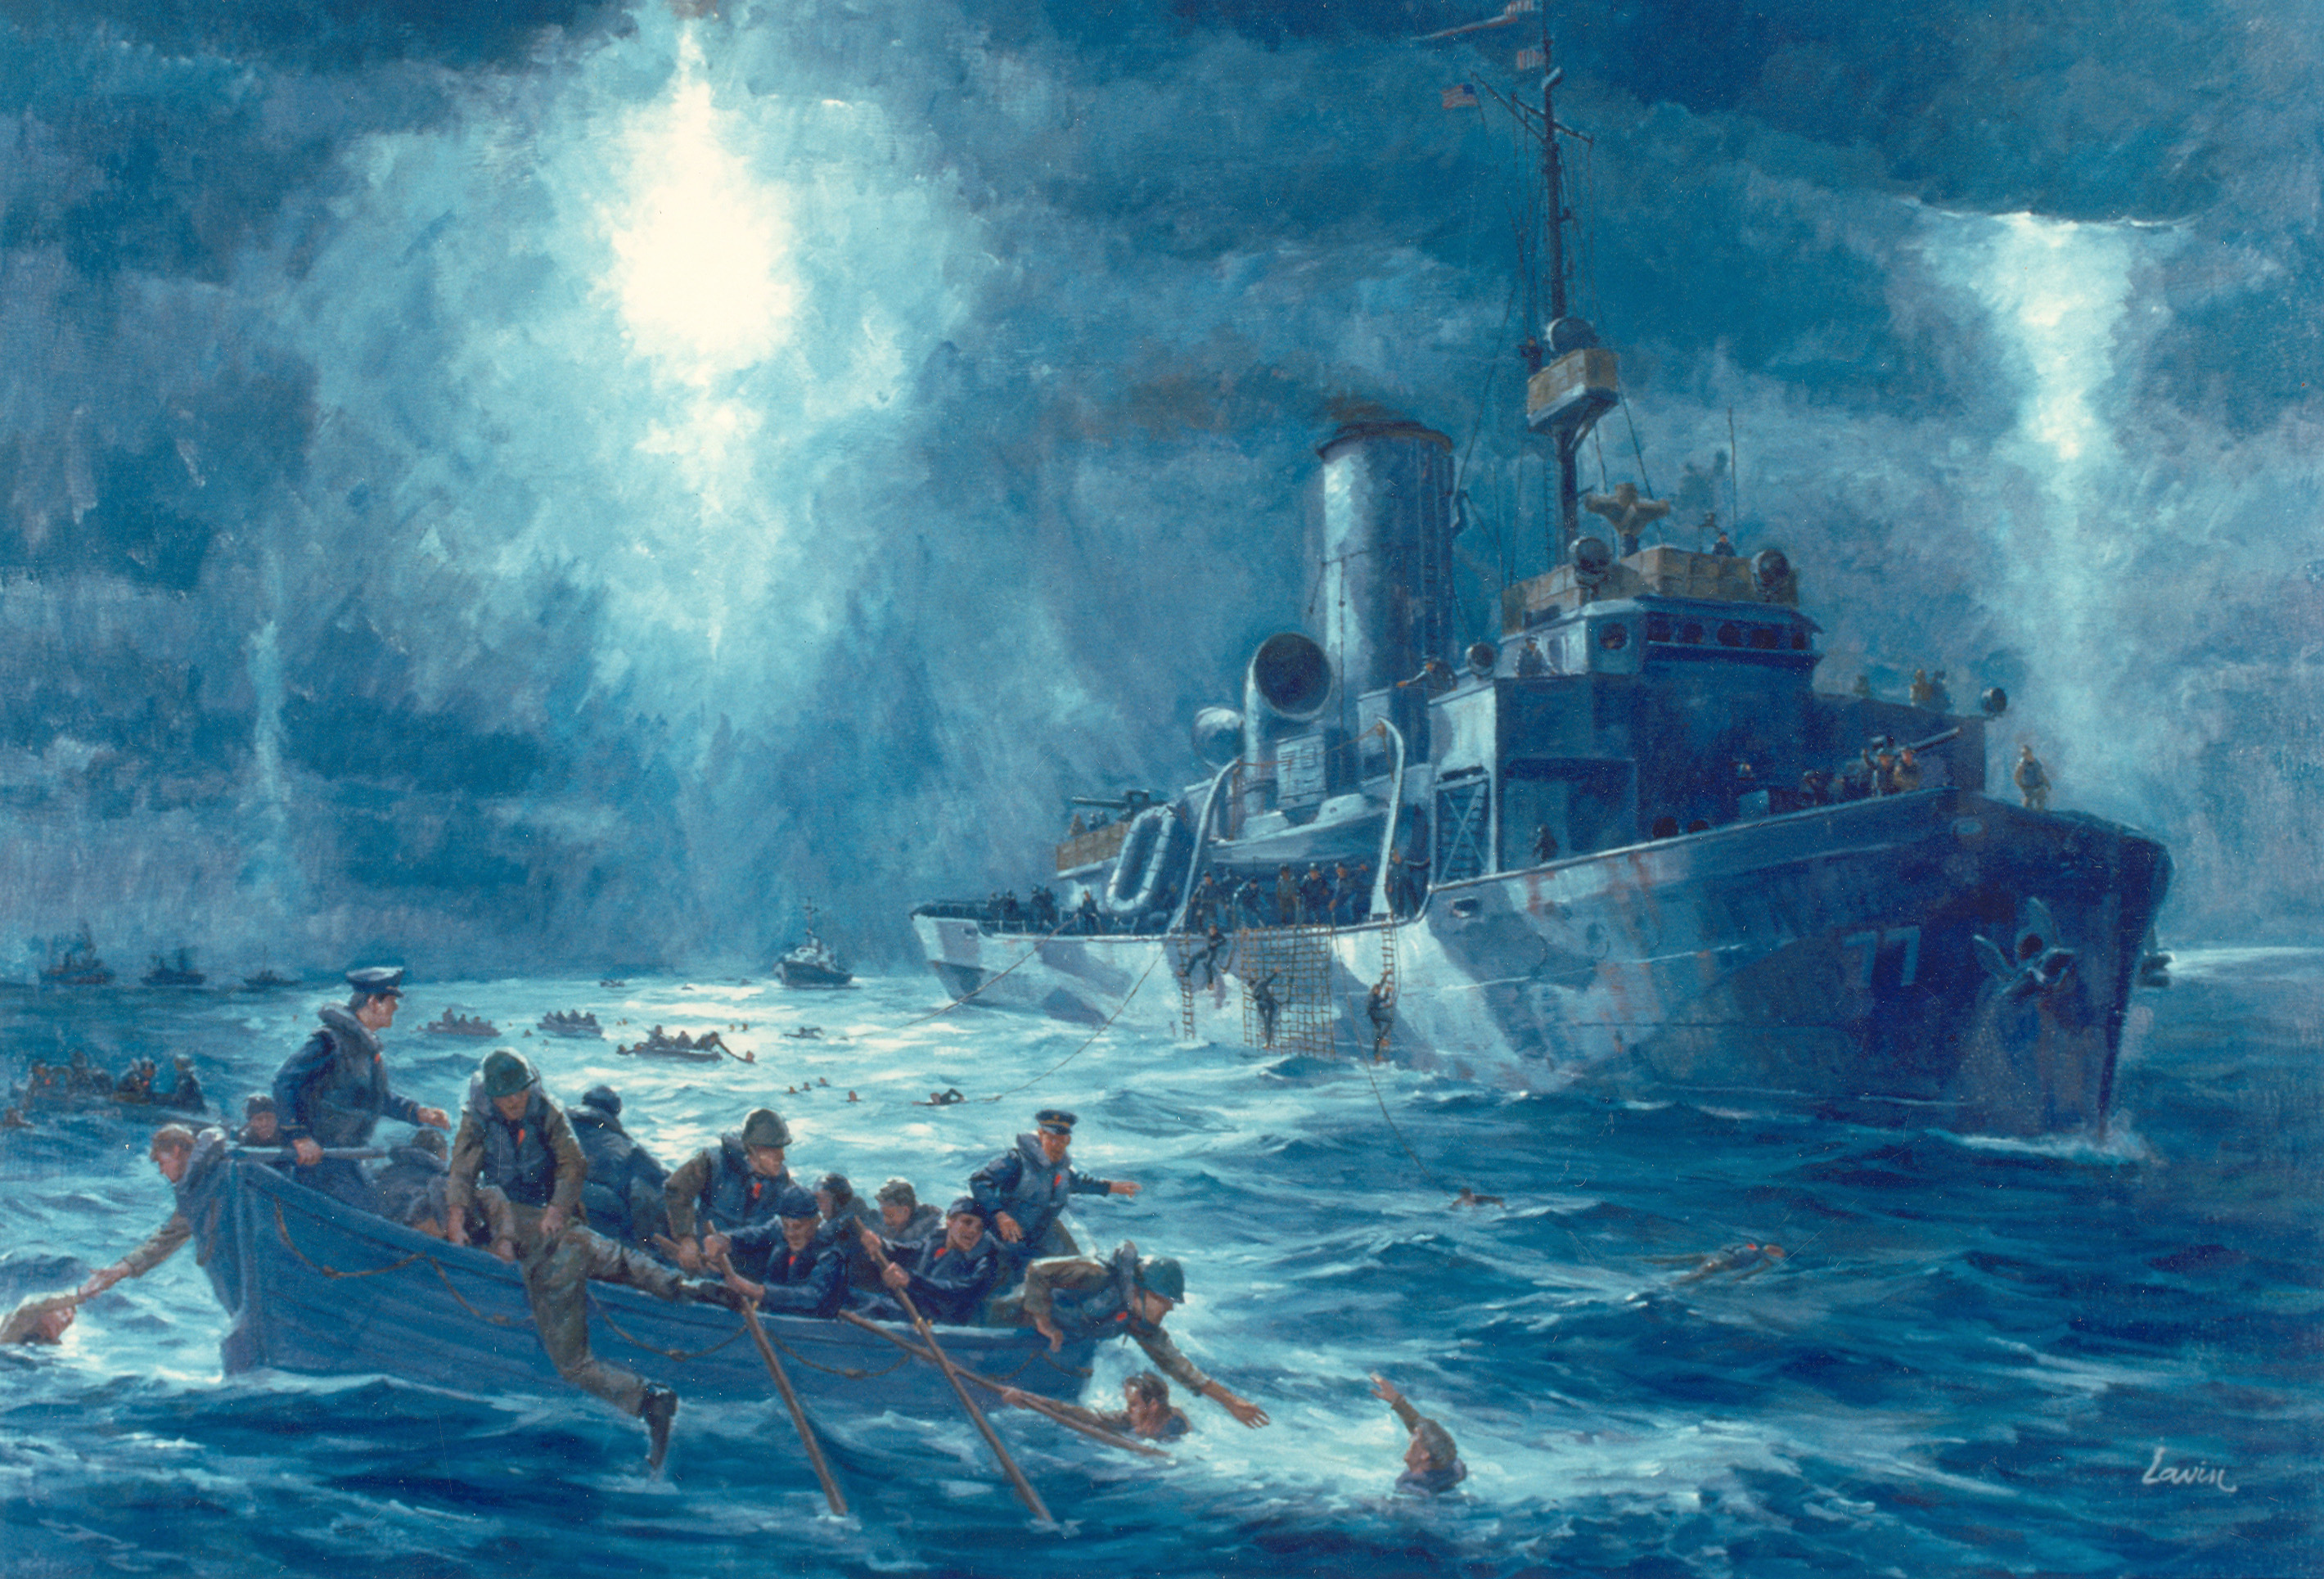 Painting of the rescue of S.S. Dorchester survivors by USCGC Escanaba (WPG-77) on February 3, 1943, in the North Atlantic Ocean. From United States Coast Guard Historian's Office at http://www.uscg.mil/history/articles/tetheredrescueswimmer.asp.